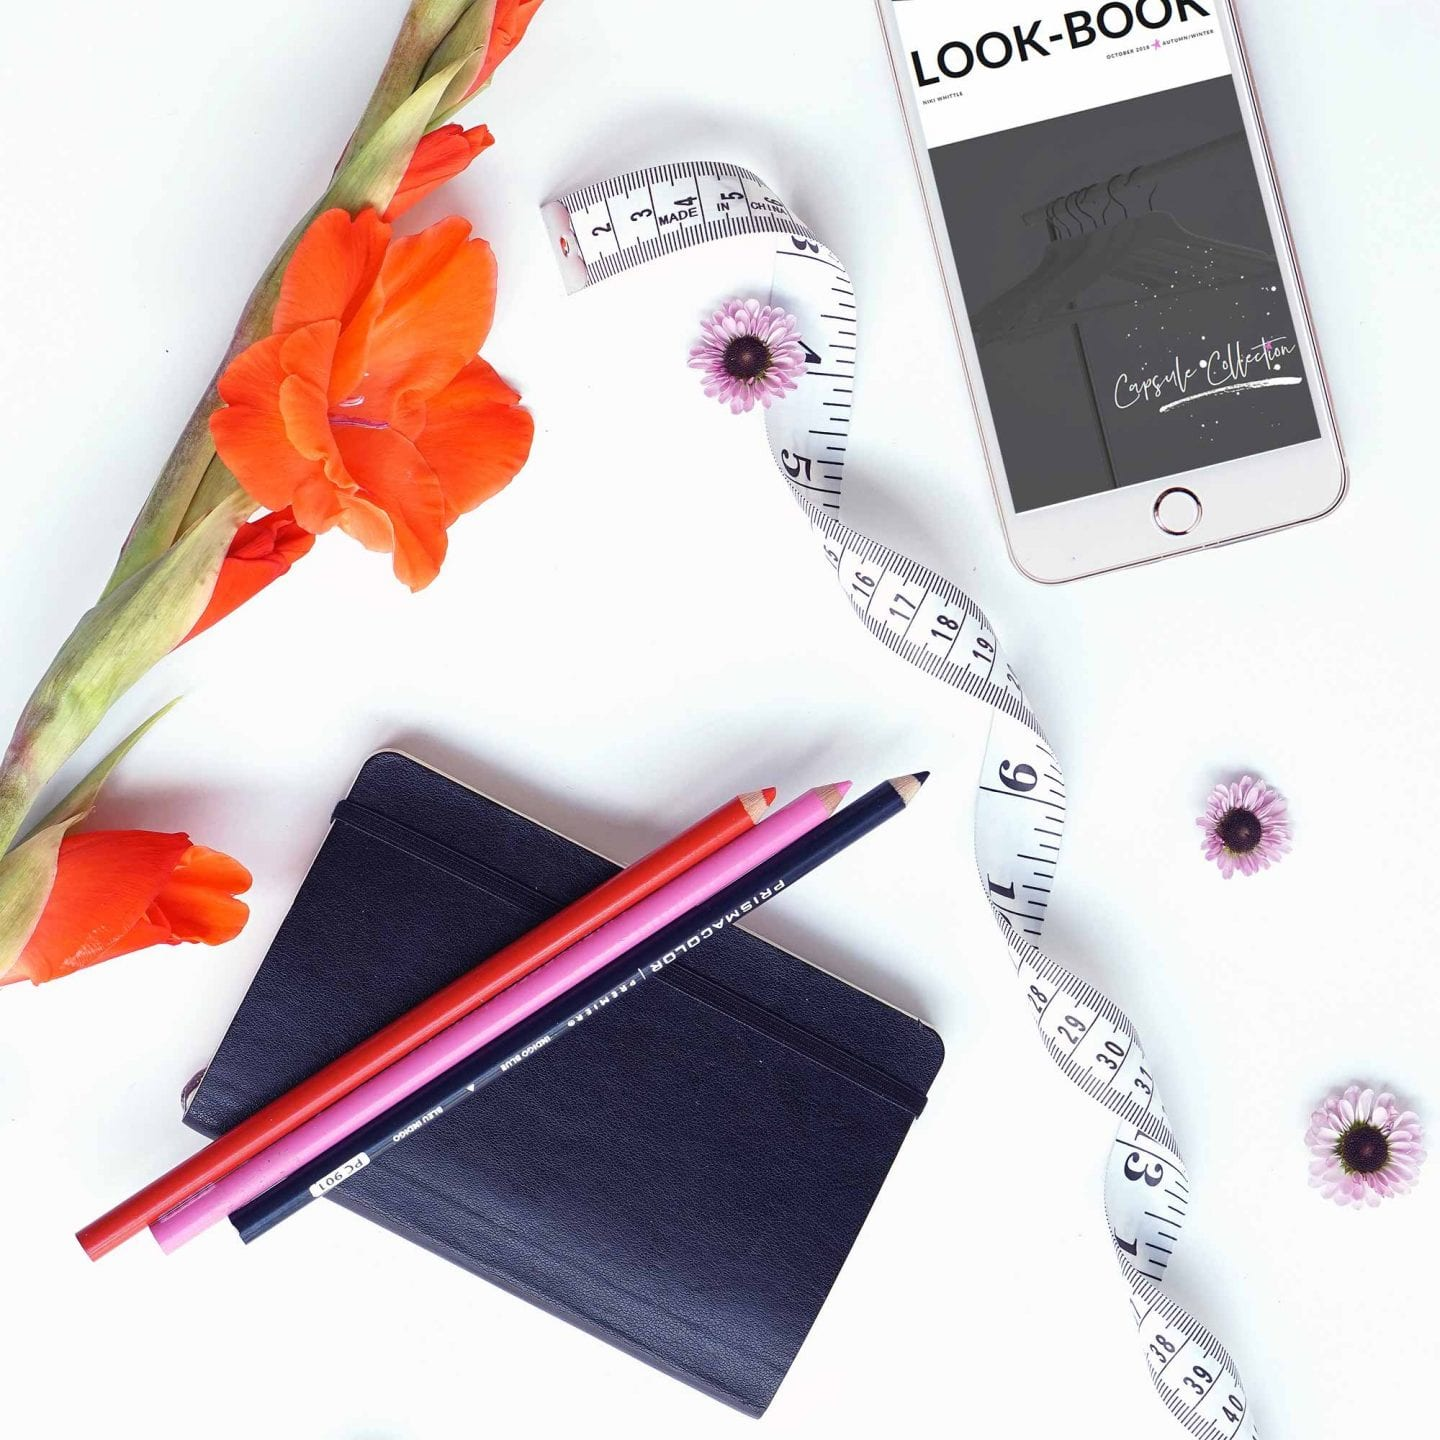 Online Personal Shopping services that will give you a closet of clothes that fit and suit you, and create a whole host of fail-safe outfits so you don't have to think about what to wear and enjoy getting dressed!